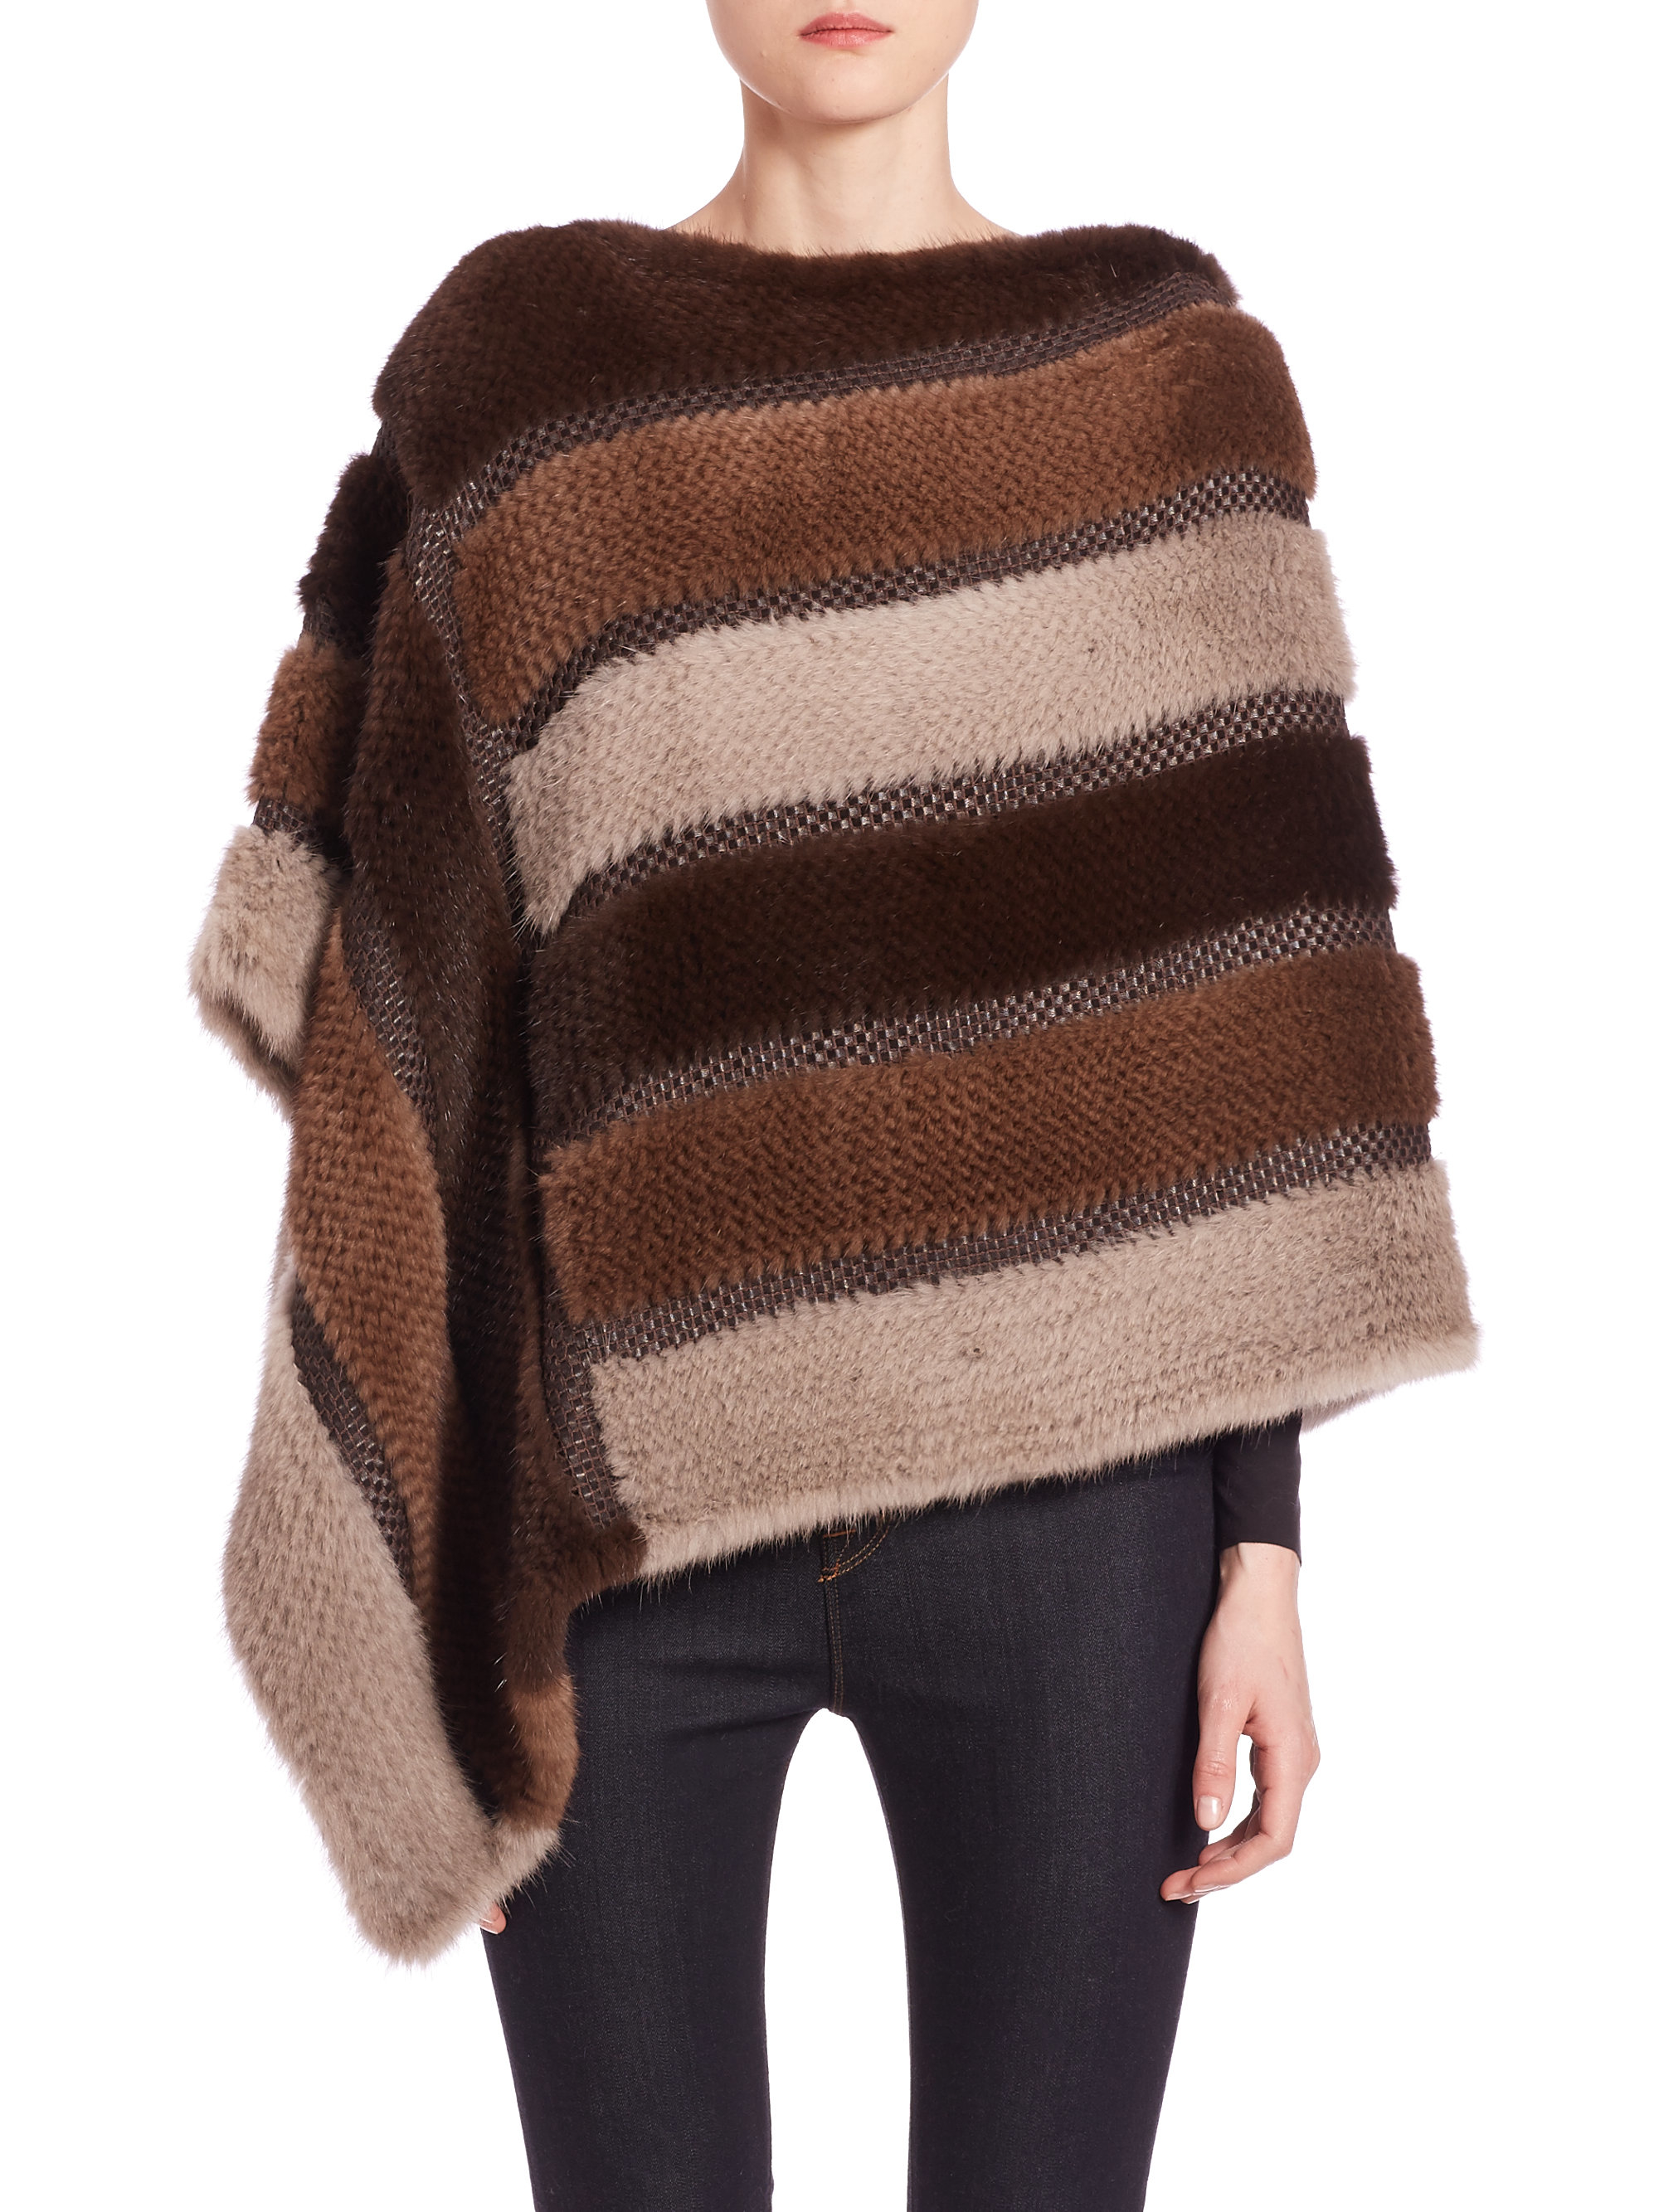 Knitting Pattern Striped Poncho : Trilogy Striped Knit Mink Poncho in Brown Lyst